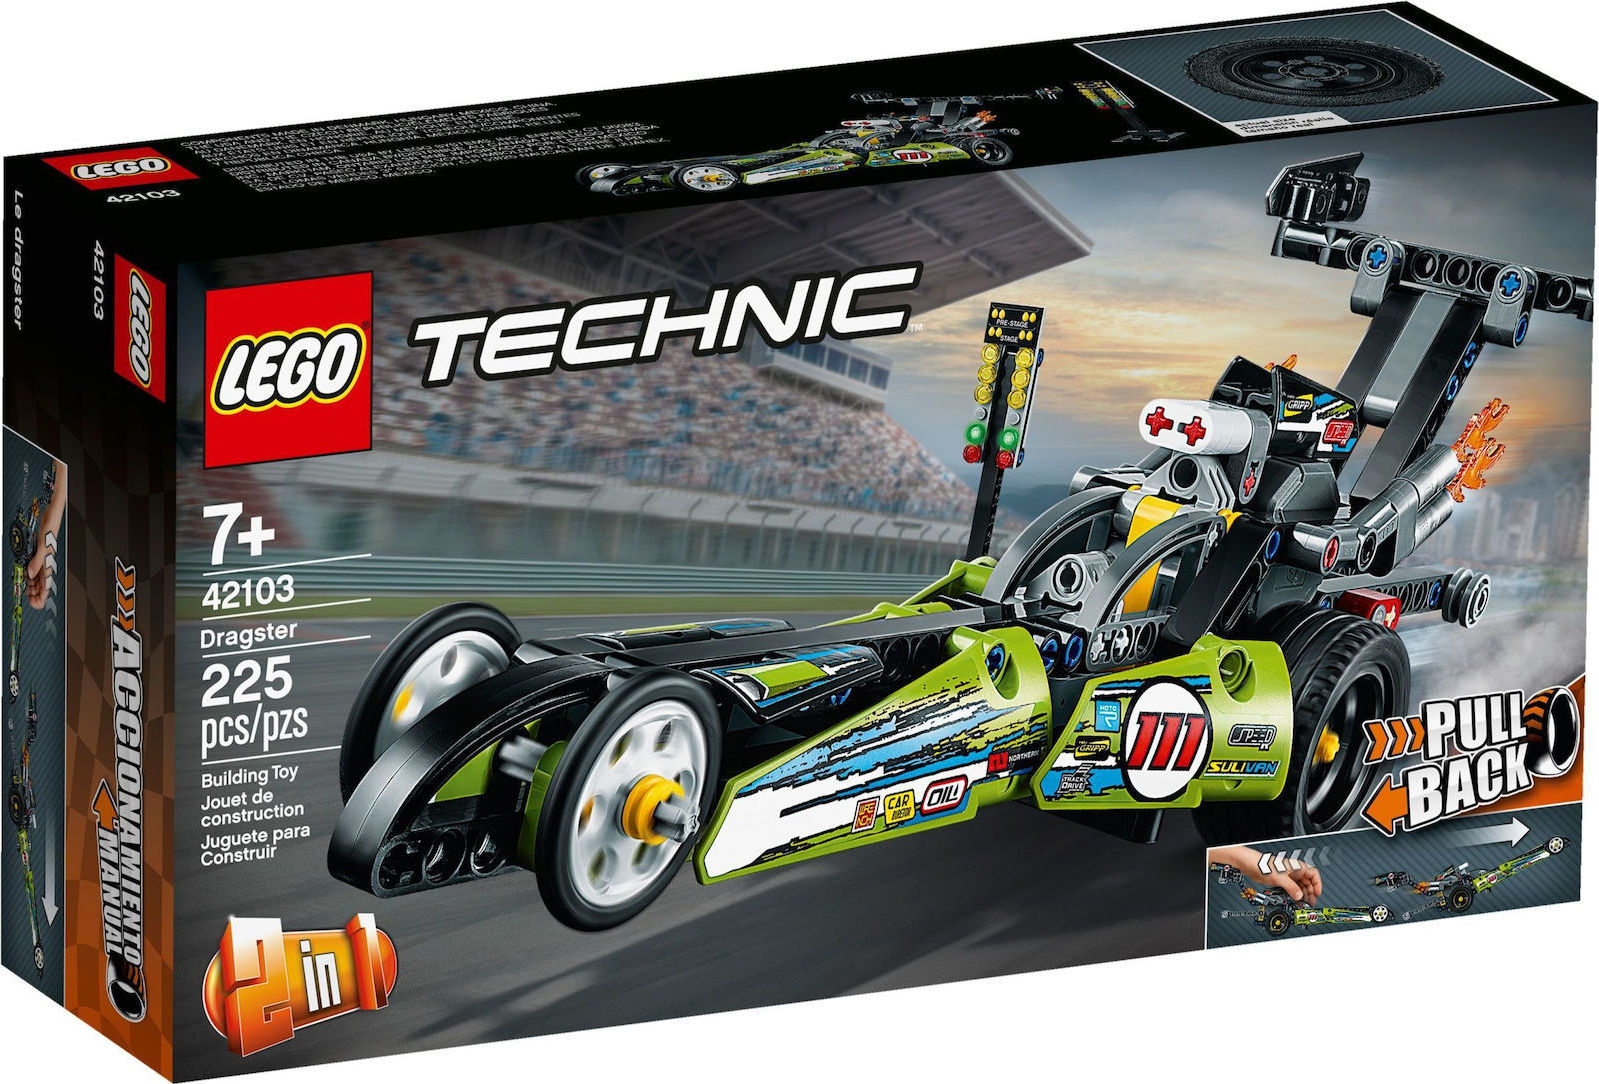 20191224101147_lego_technic_dragster_42103